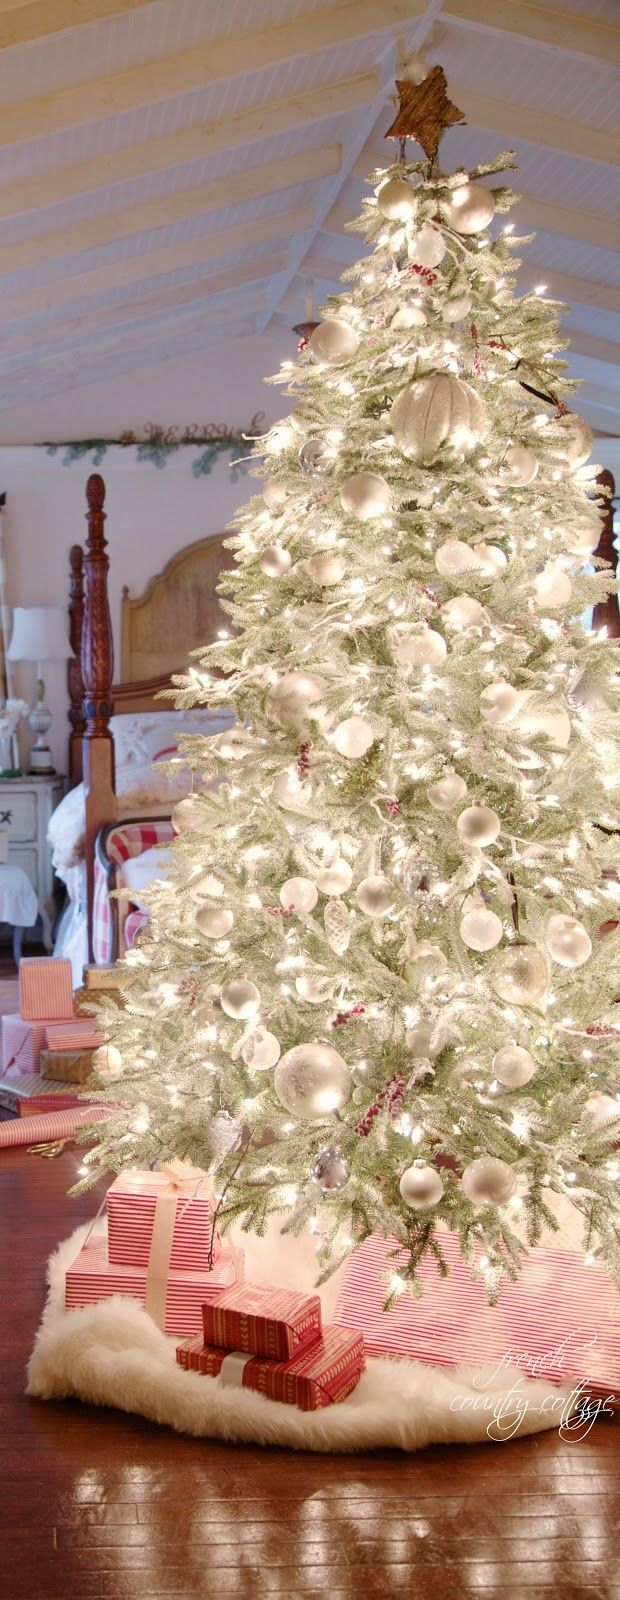 Stunning white Christmas tree